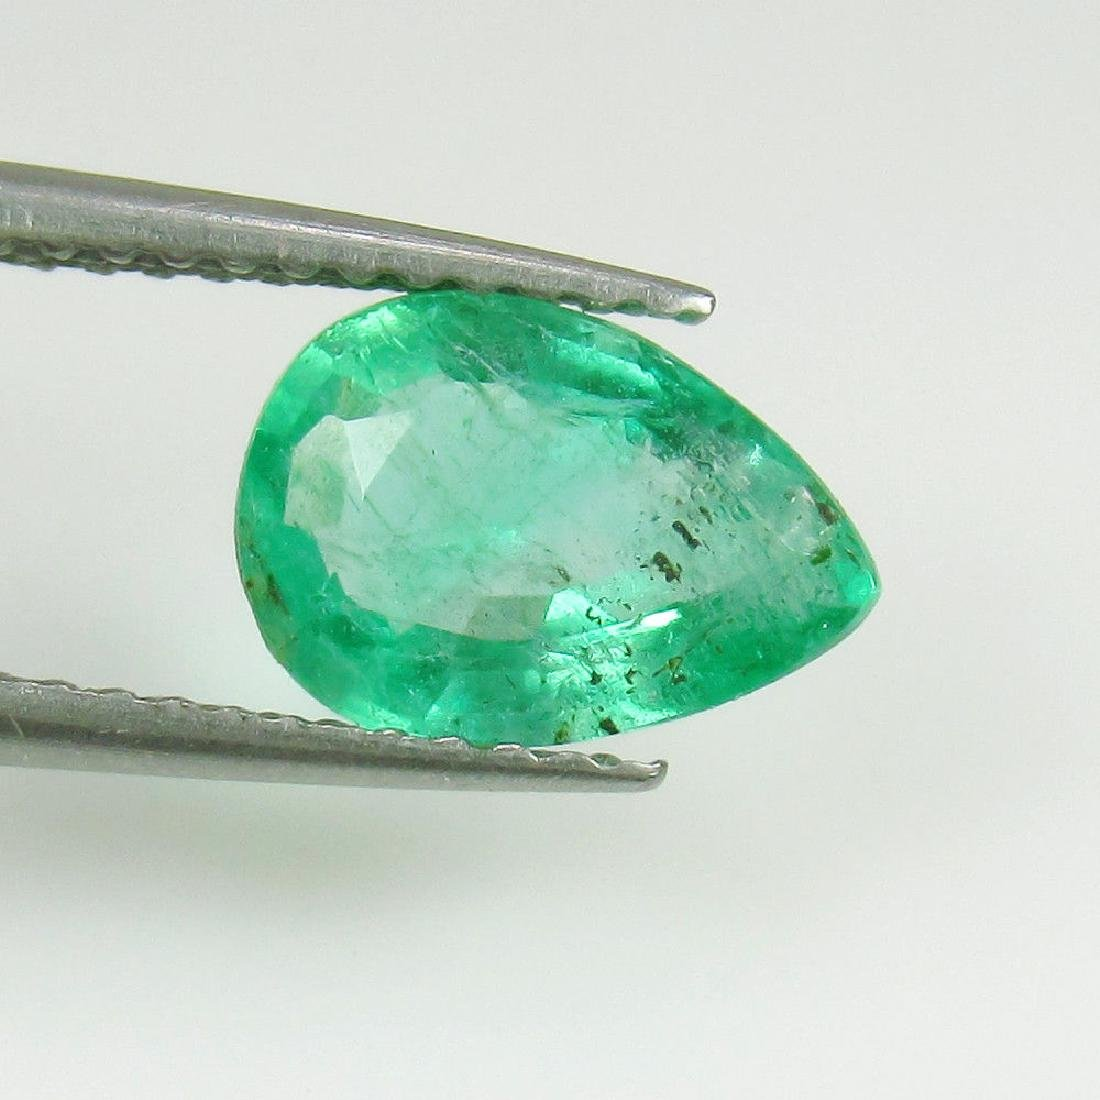 1.22 Ctw Natural Loose Zambian Emerald Excellent Pear